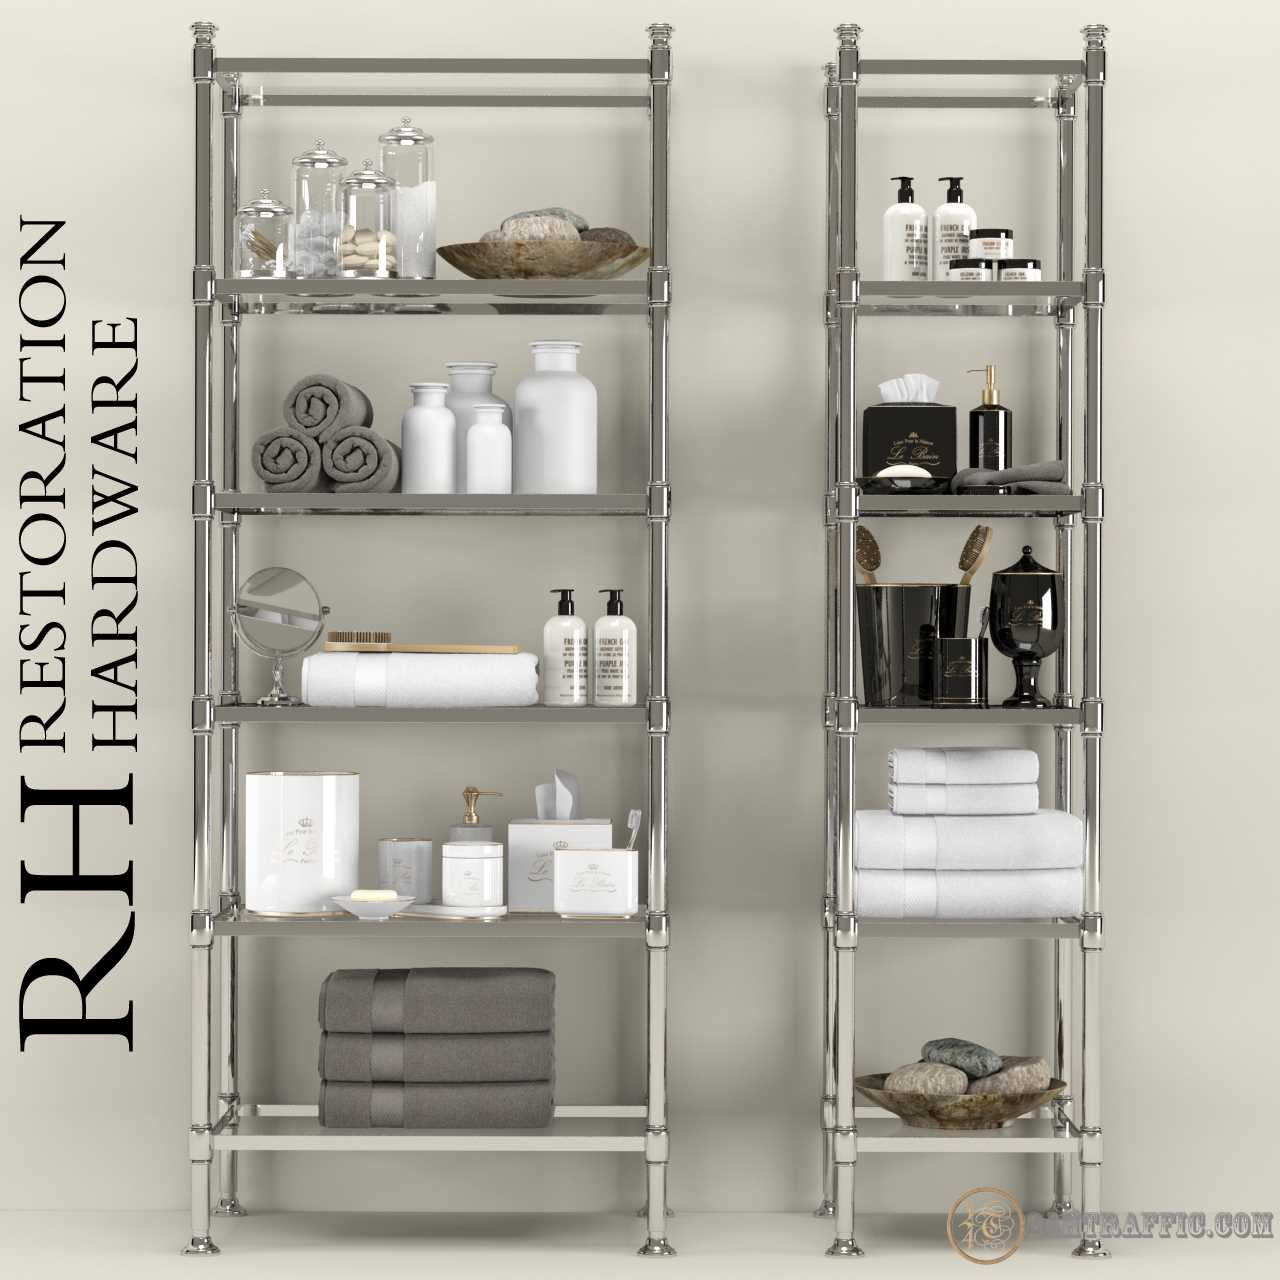 3dSkyHost: 3D Models Restoration Hardware Bathroom Acsessories 54 Free Download